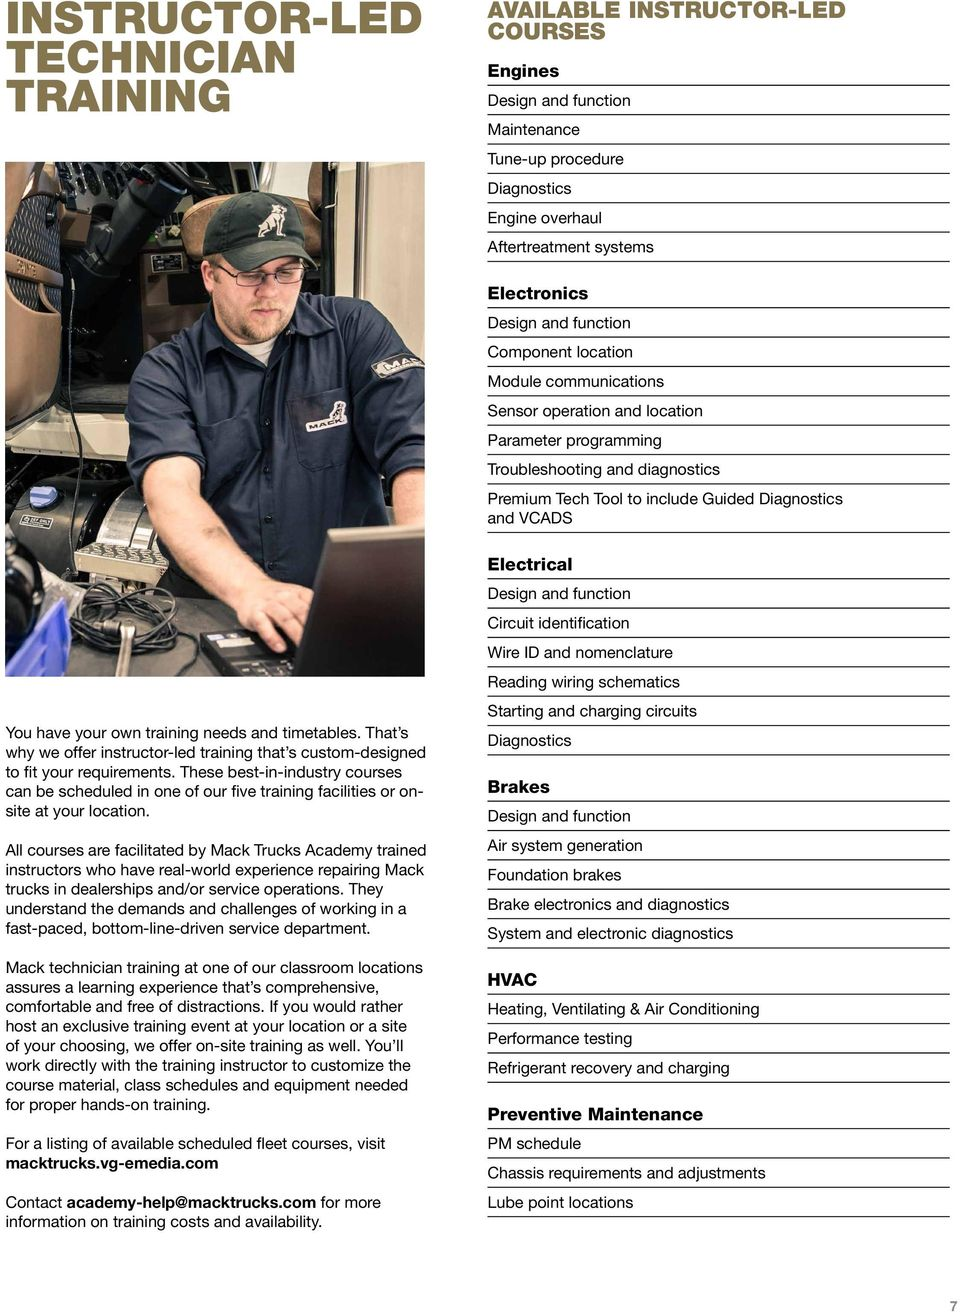 Customer Training Courses For Service Technicians Pdf Mack Truck Electrical Schematics Have Your Own Needs And Timetables That S Why We Offer Instructor Led 8 Trucks